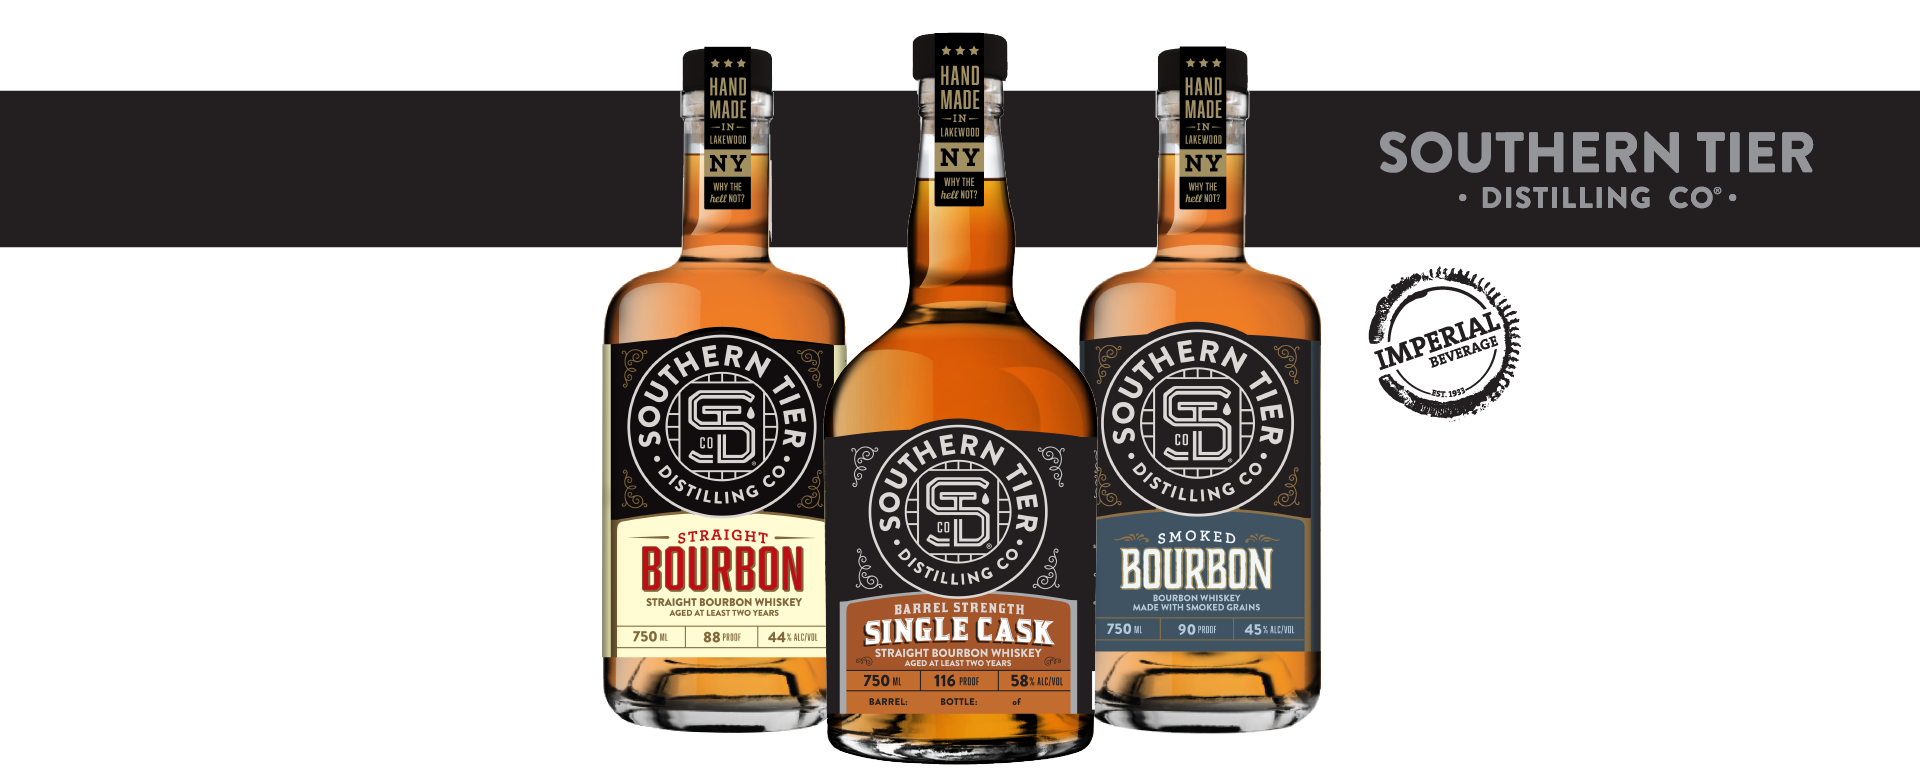 Imperial Beverage Southern Tier Distilling